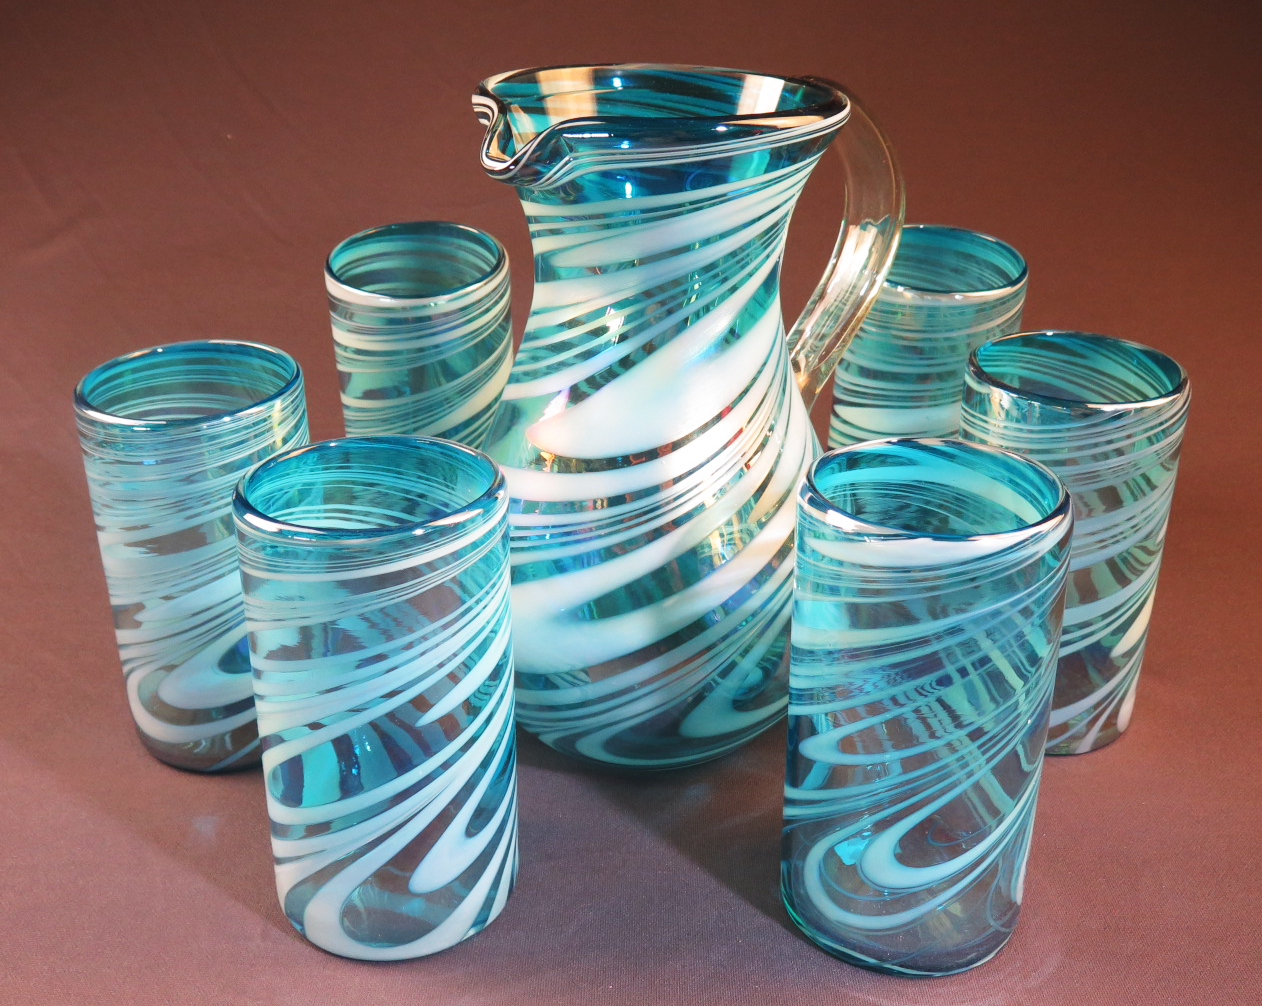 Mexican Glass Set Pera Pitcher With Six 18oz Tumblers Turquoise And White Swirl Hand Blown In